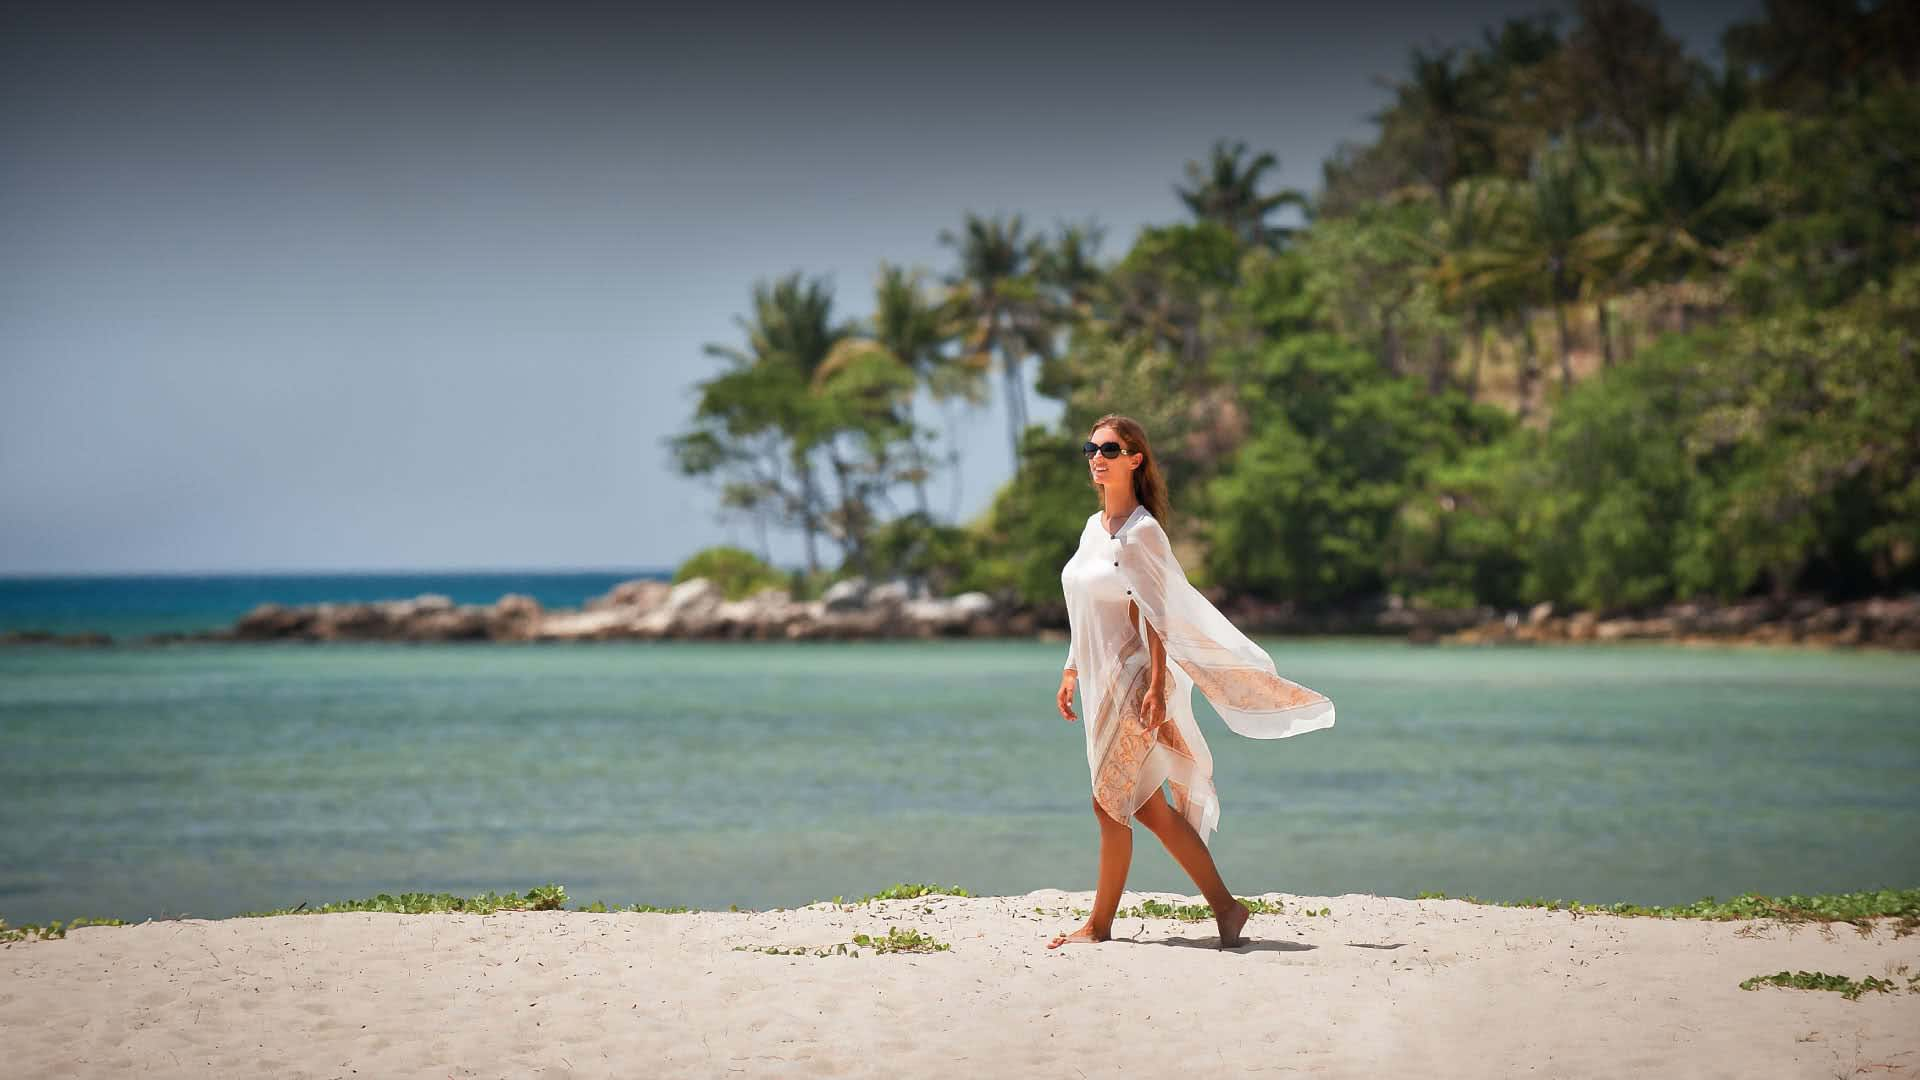 https://assets.anantara.com/image/upload/q_auto/media/minor/anantara/images/anantara-layan-phuket-resort/the-resort/desktop-banner/layan_headerbanner_fallback_1920x1080.jpg